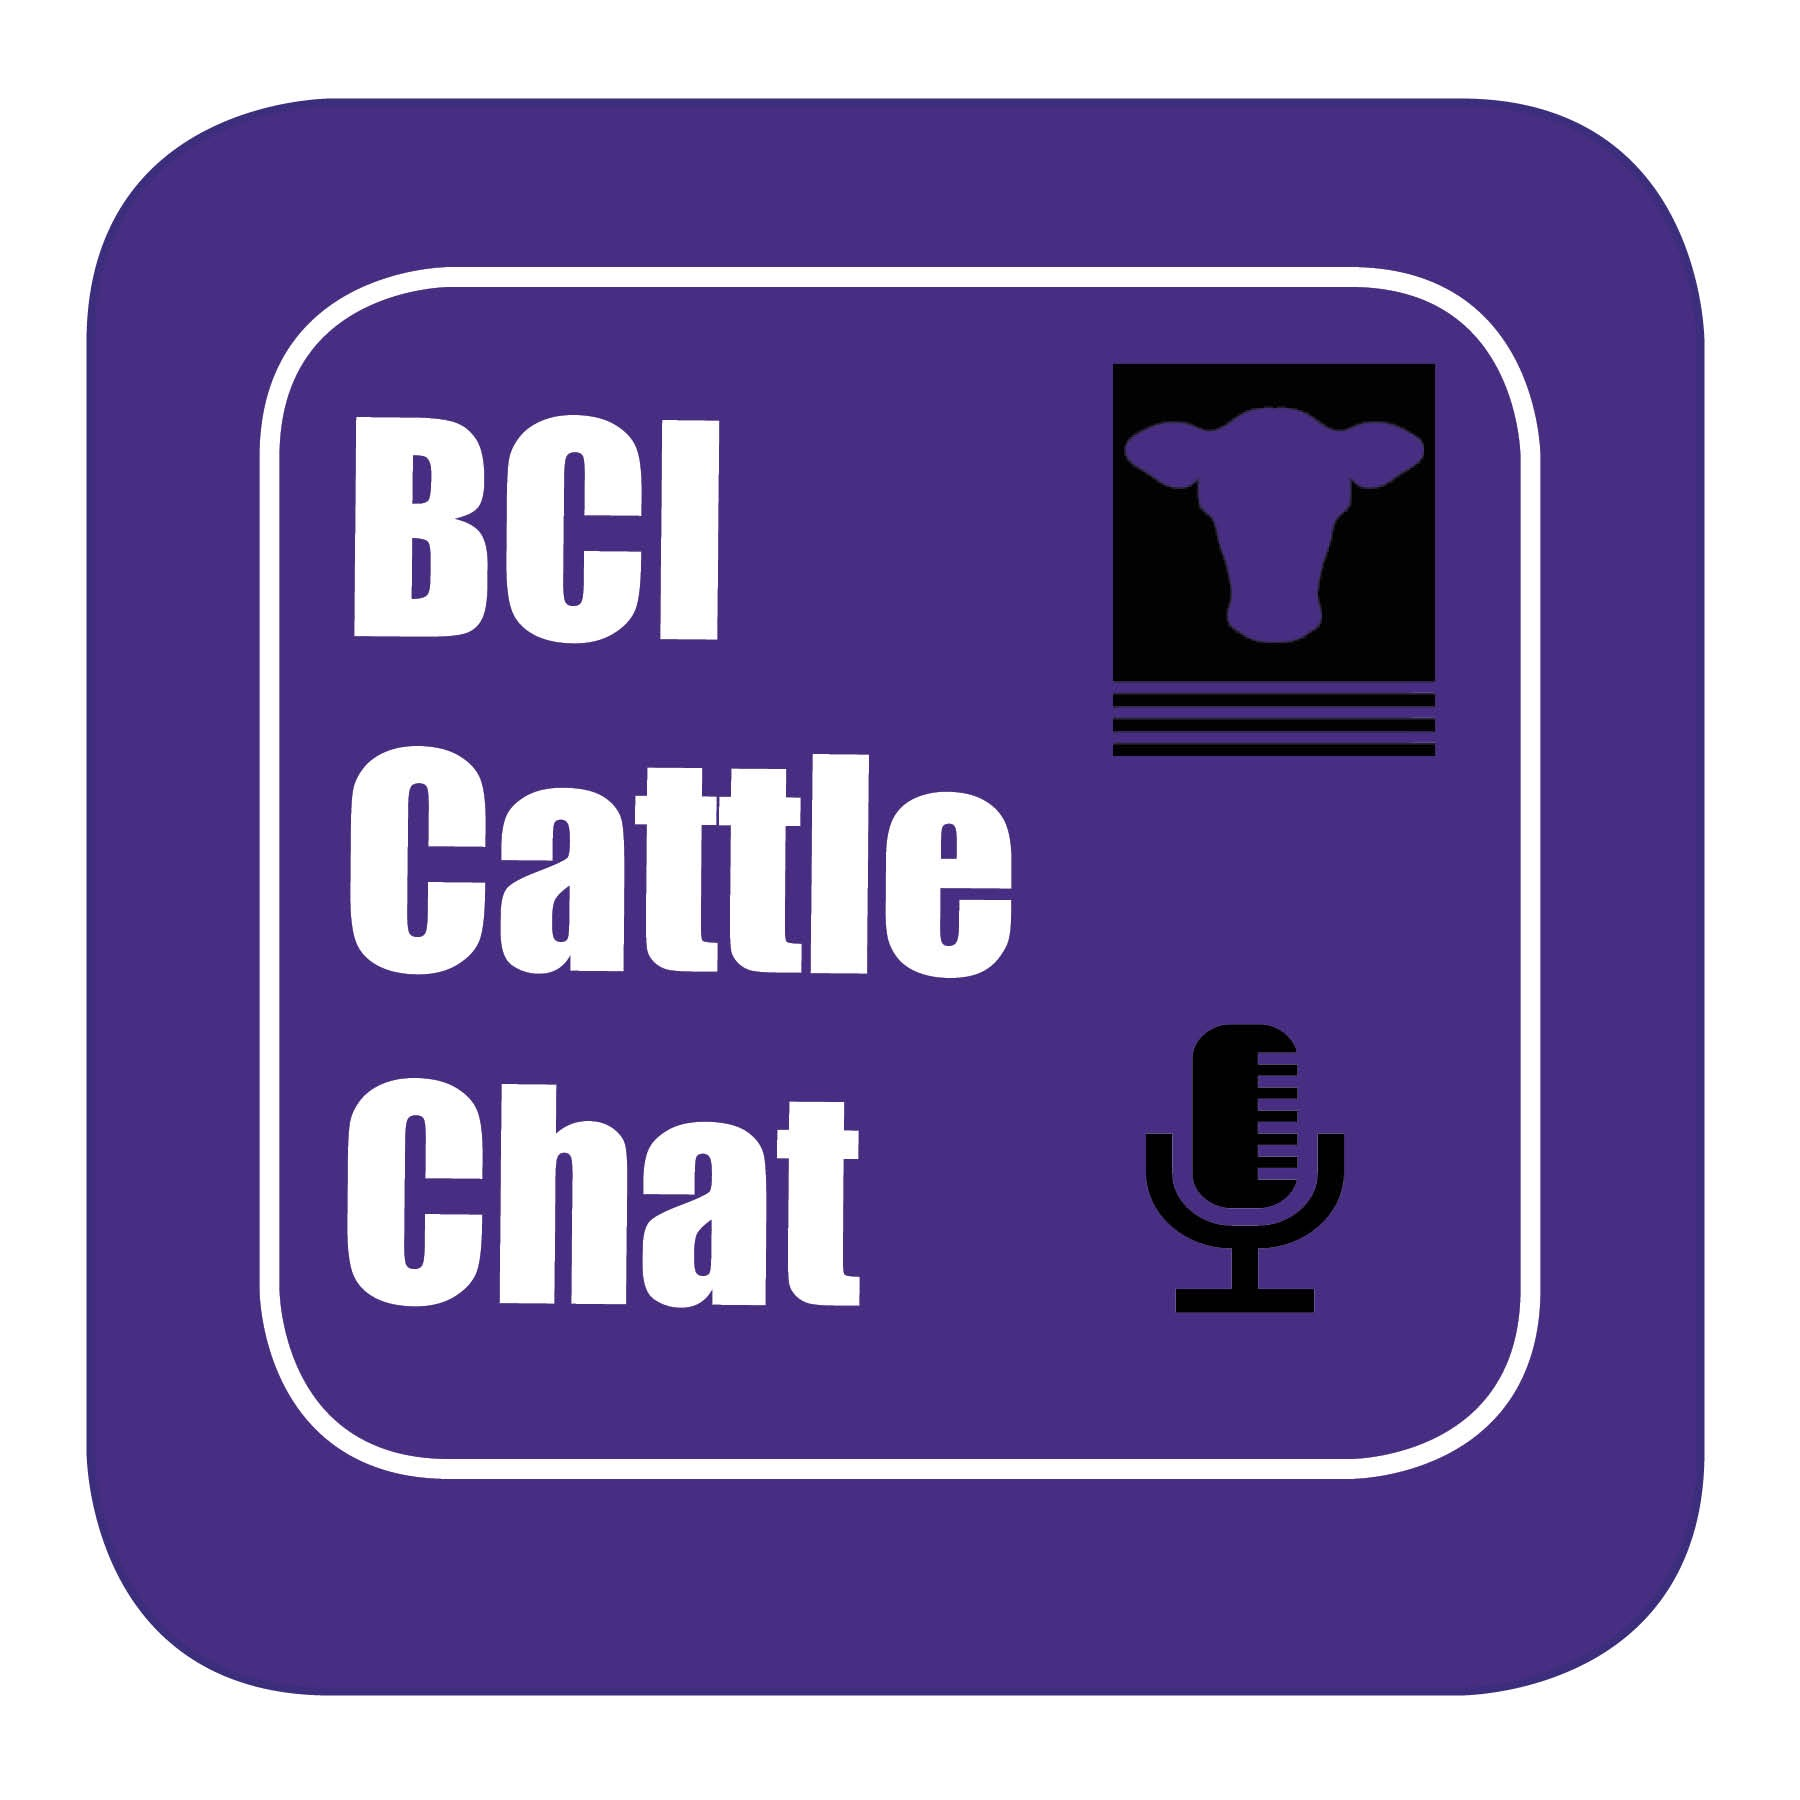 BCI Cattle Chat - Episode 19